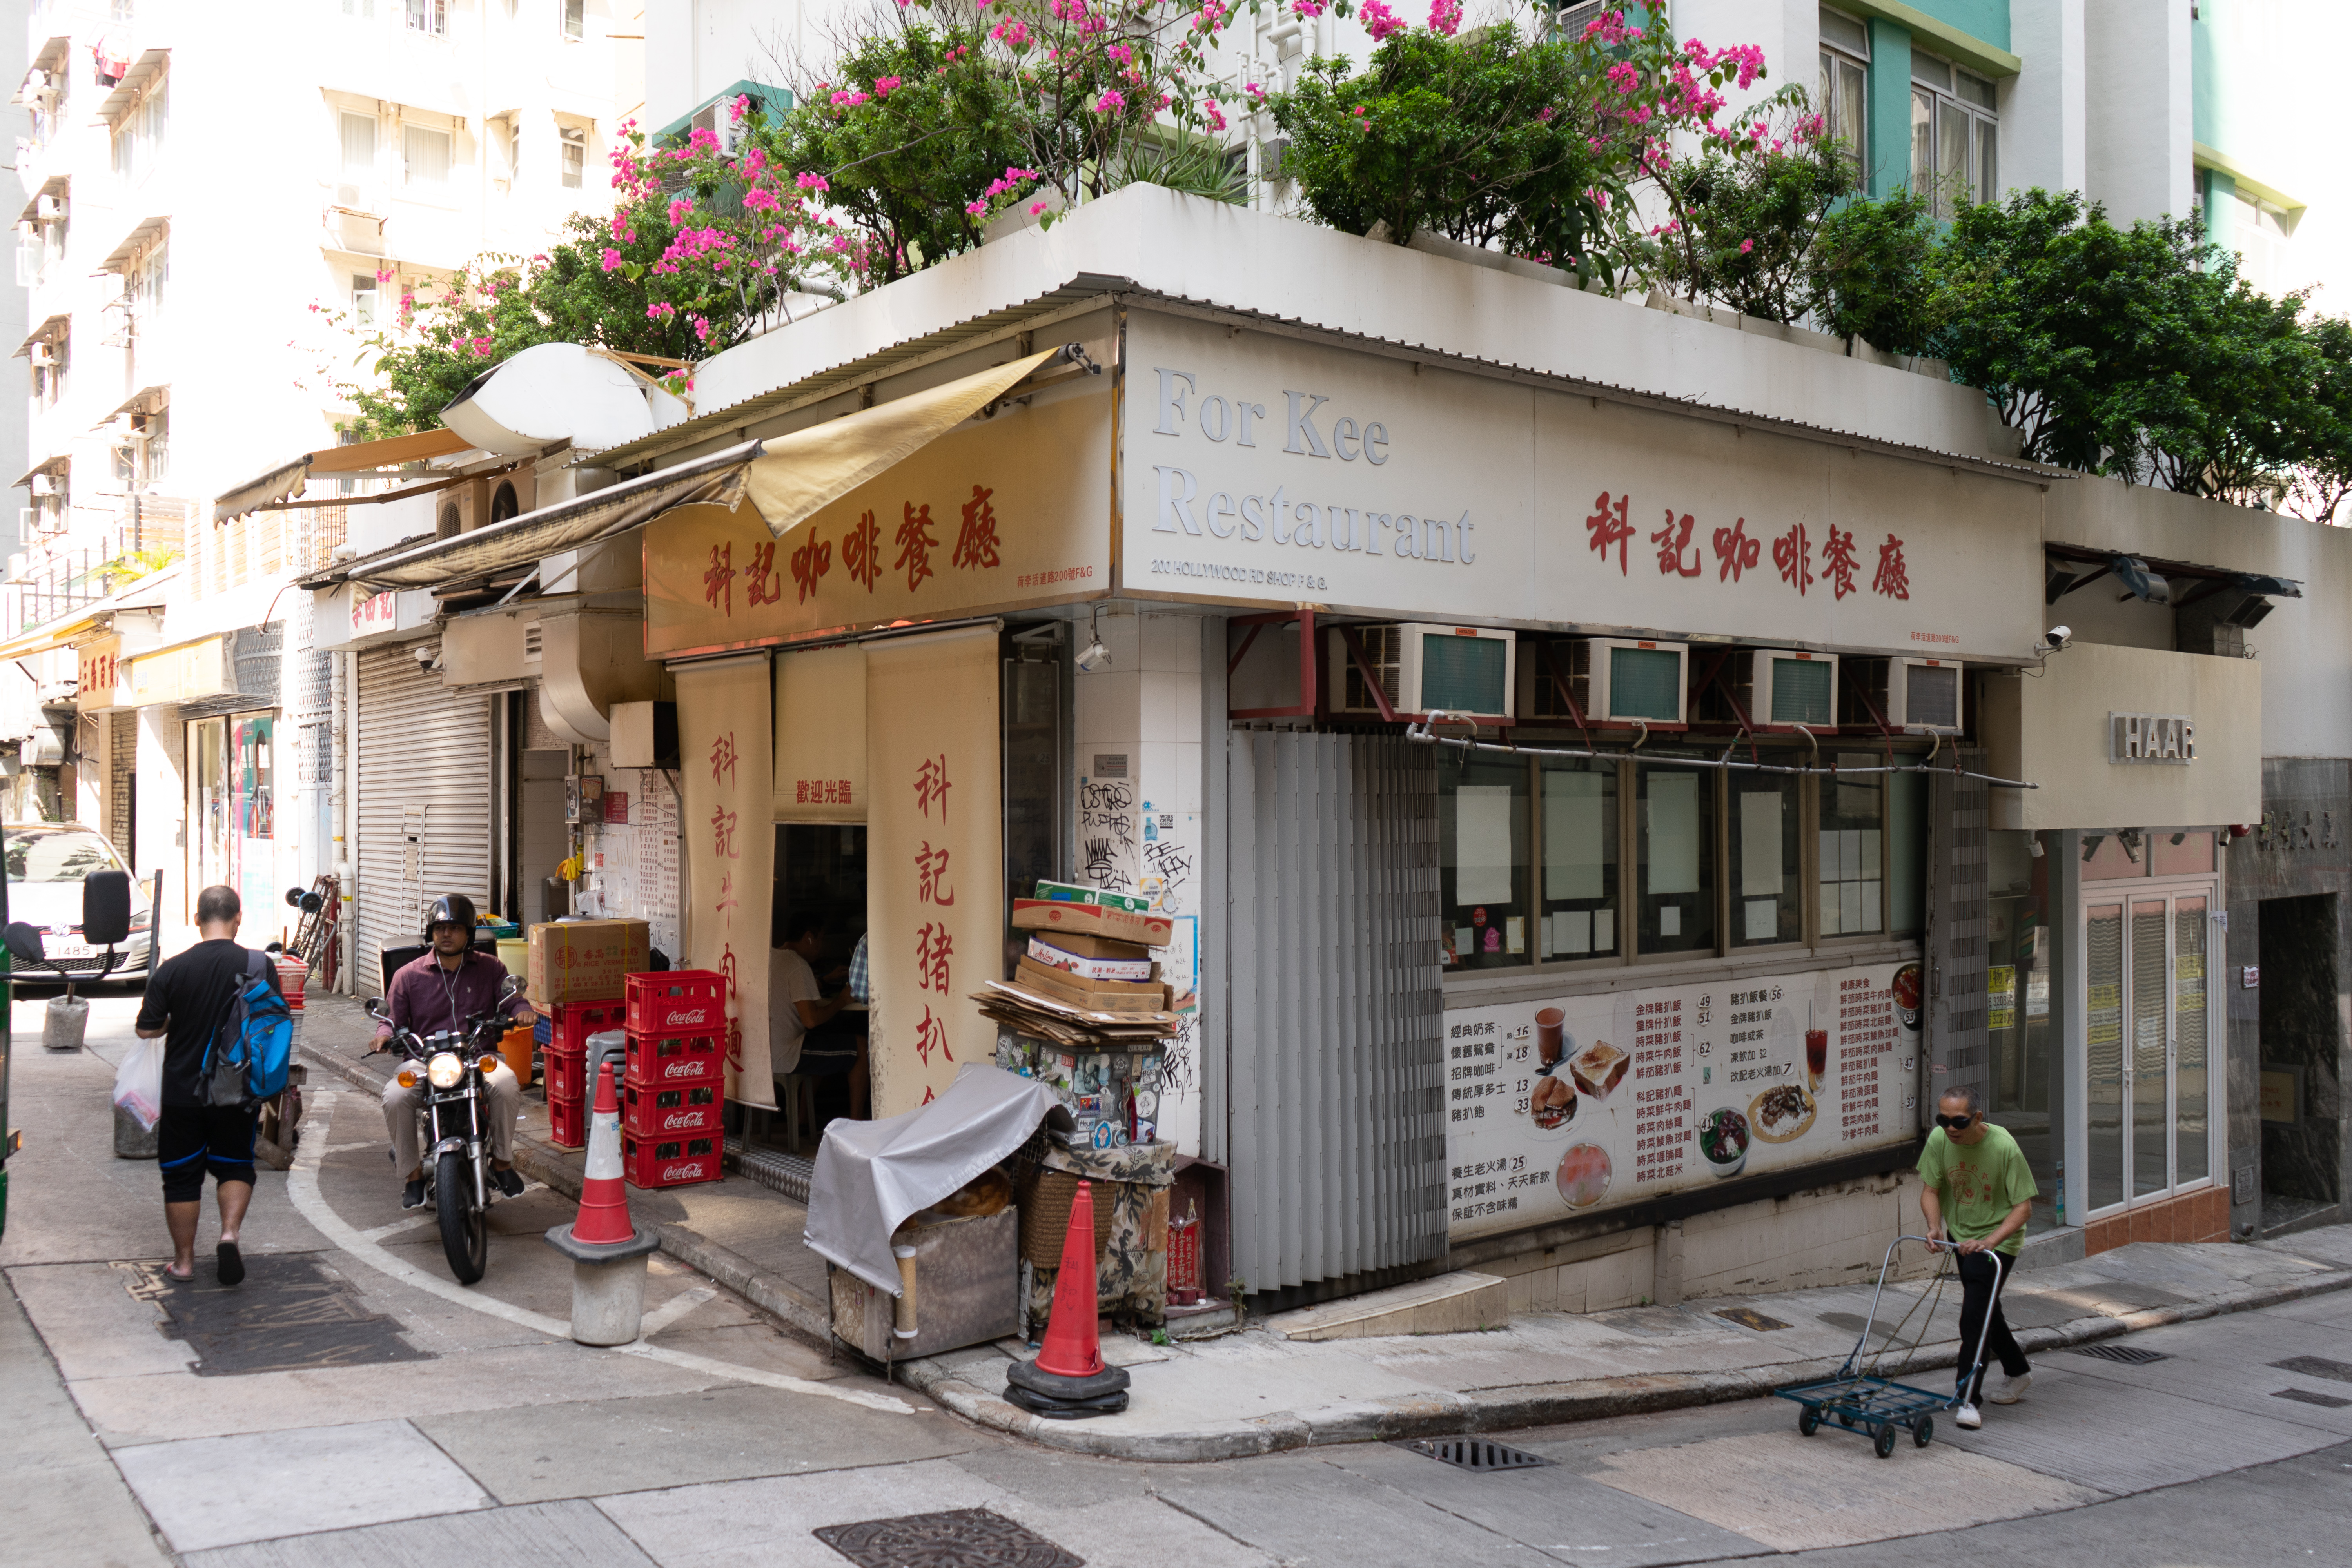 For Kee Restaurant from the outside of Tai Ping Shan Hong Kong